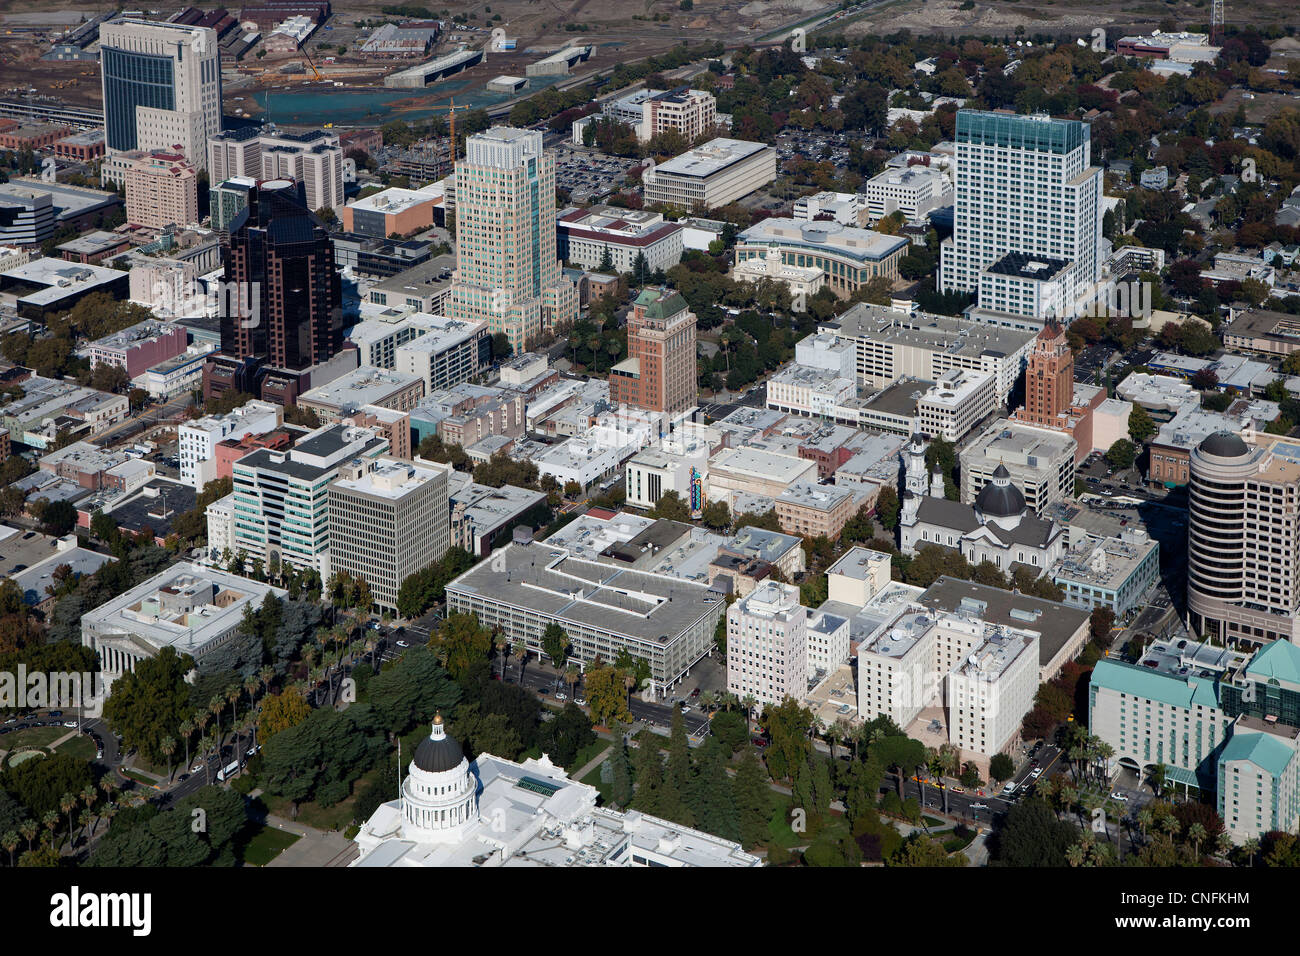 aerial photograph Sacramento, California - Stock Image